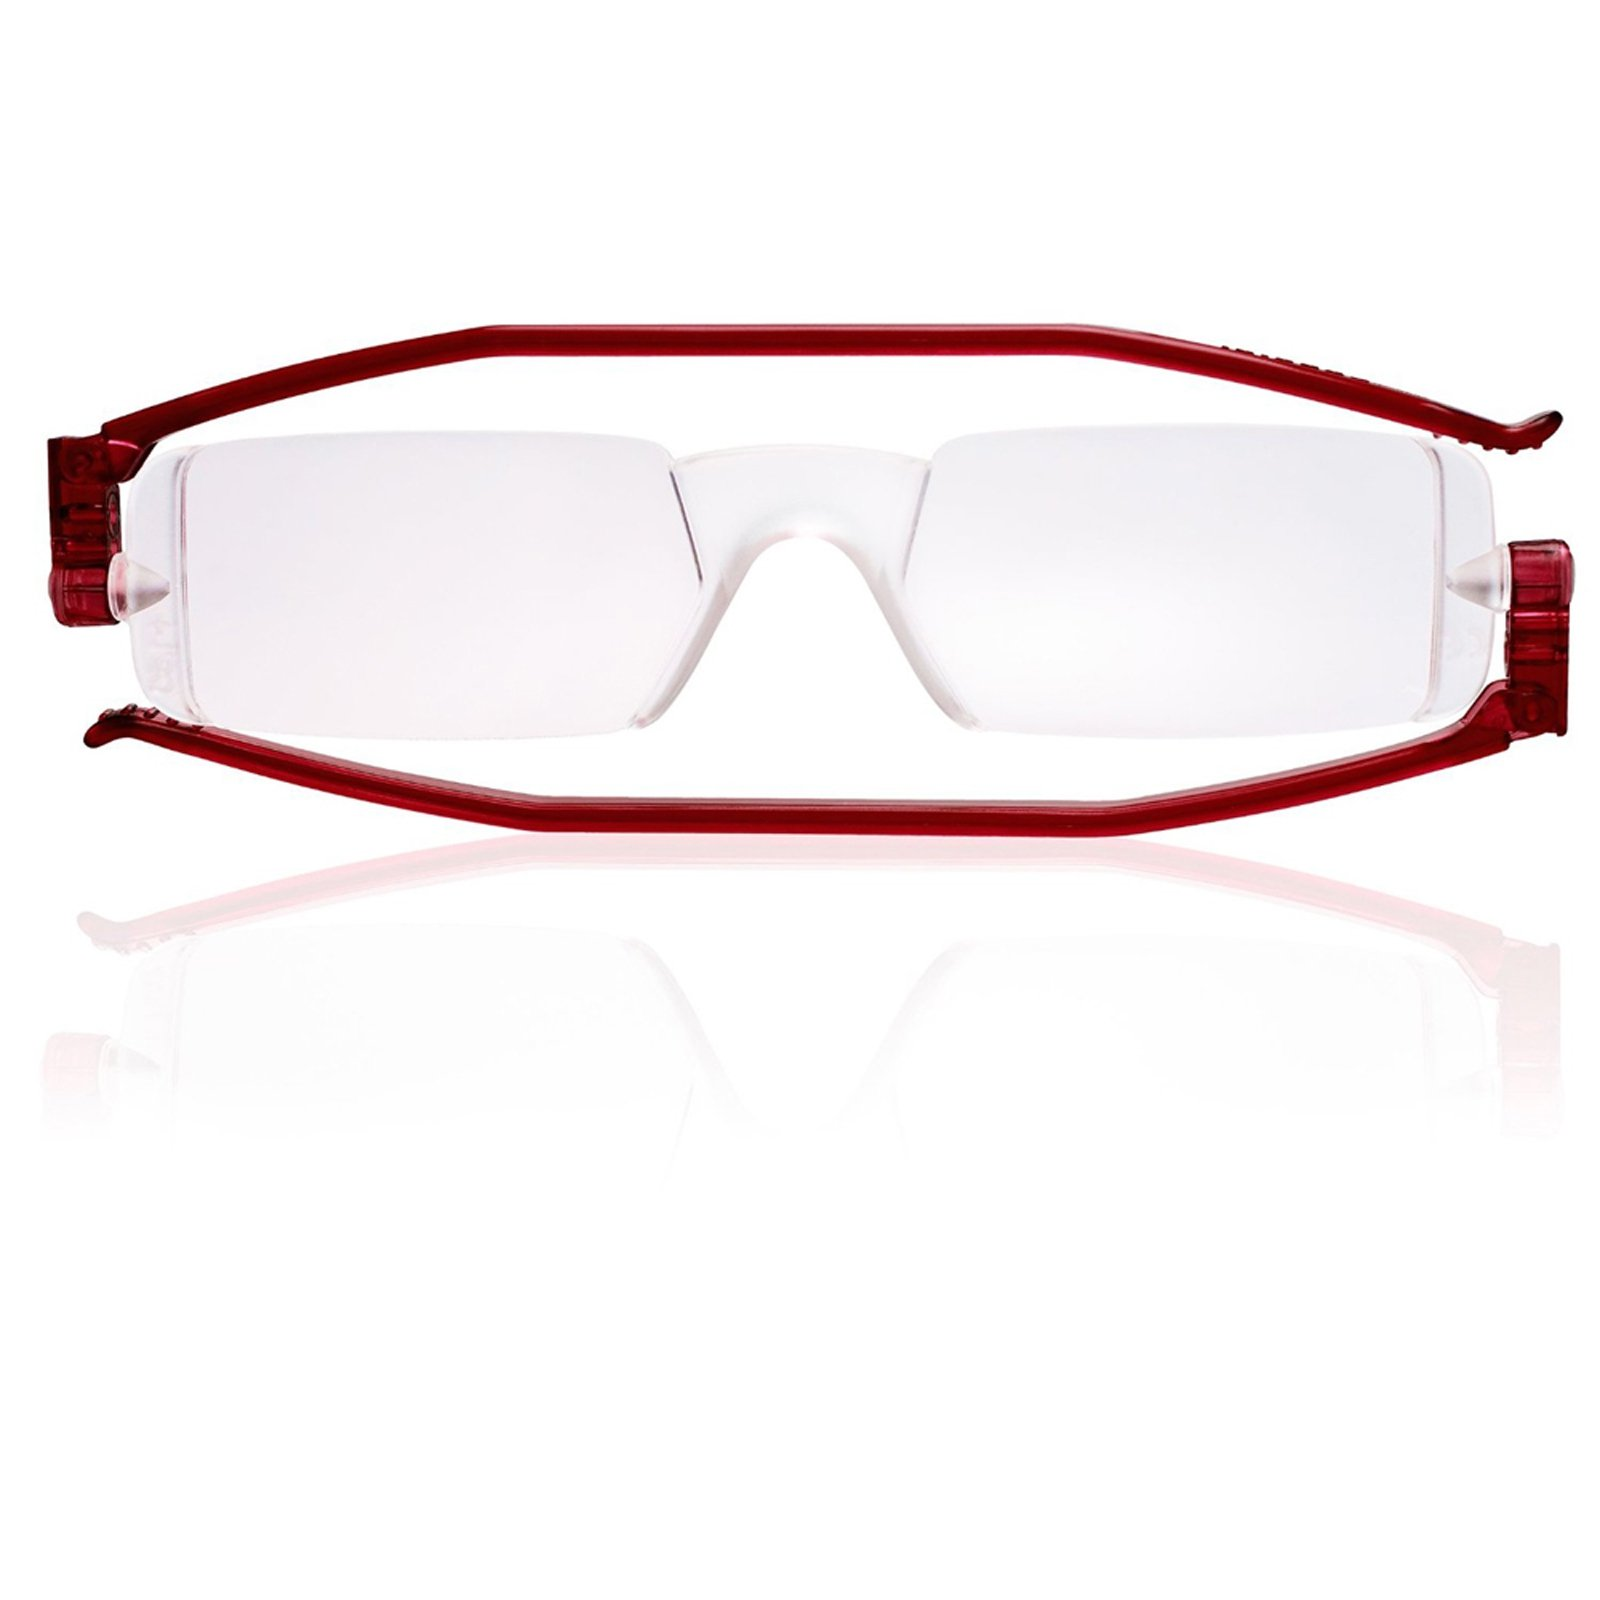 Nannini Italy Red Reading Glasses - 1.0 Optic